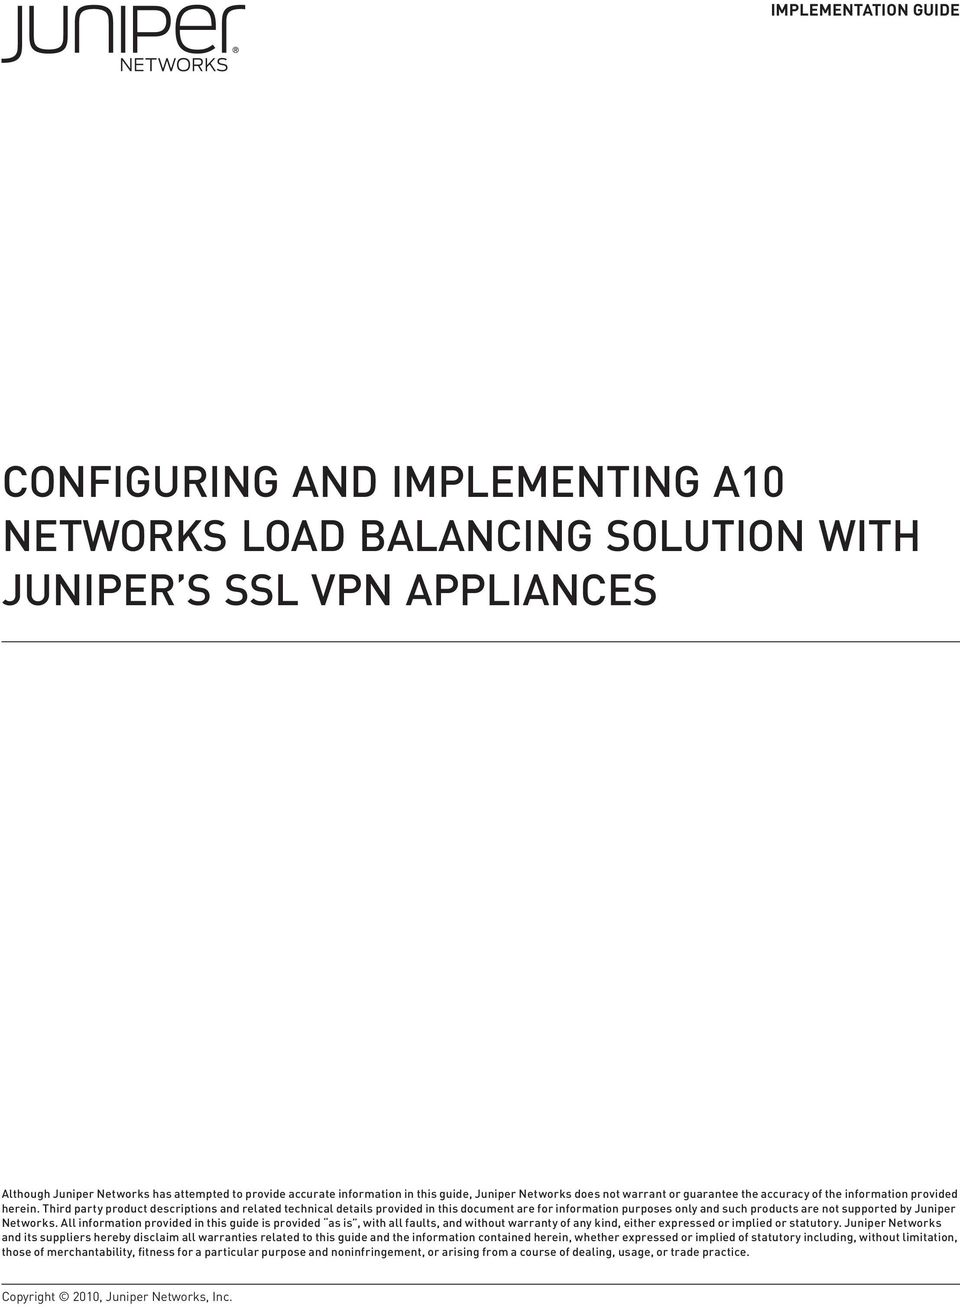 Third party product descriptions and related technical details provided in this document are for information purposes only and such products are not supported by Juniper Networks.